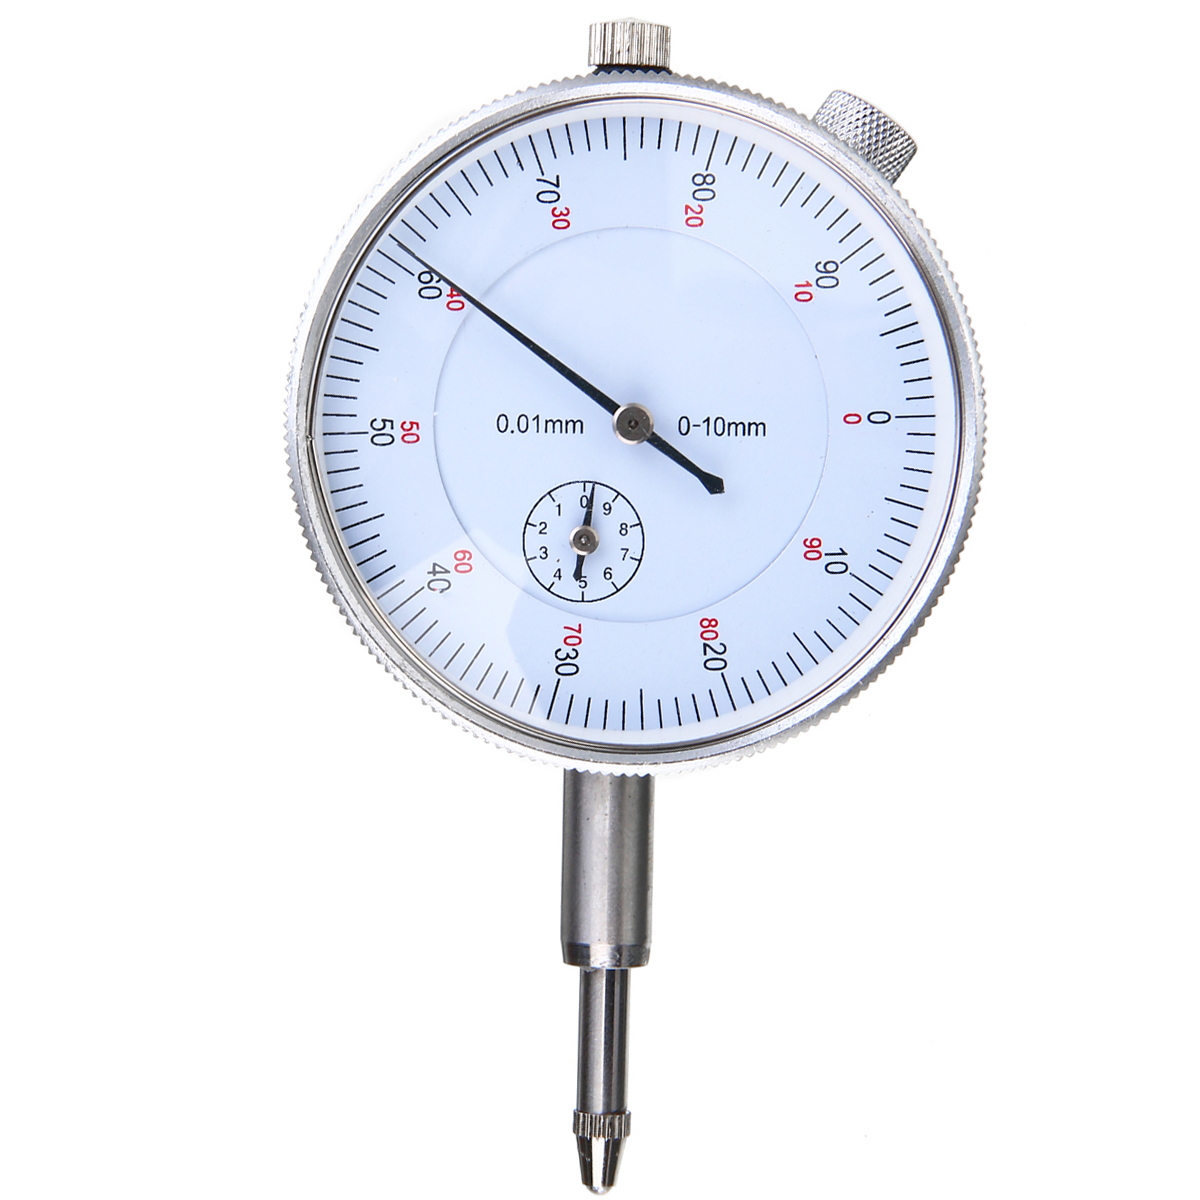 Convenient Use And Maintenance High Sensitivity Dial Indicator 0-10Mm Outer Measuring 0.01Mm Accurate Clock,Simple Structure